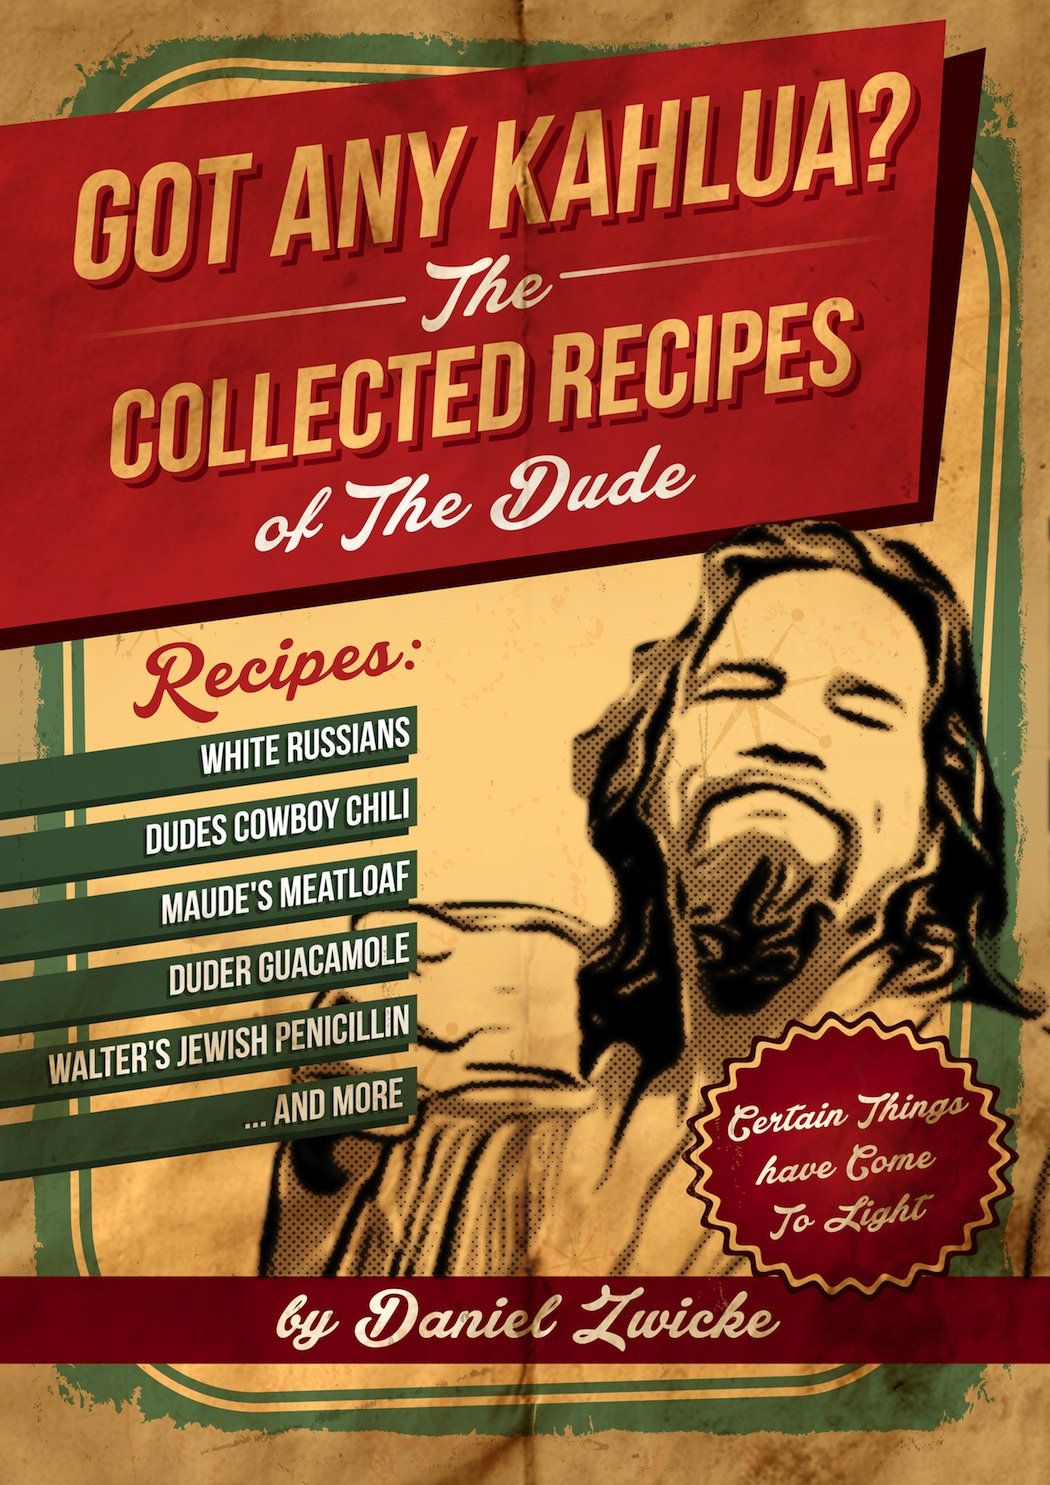 GOT ANY KAHLUA? The COLLECTED RECIPES of THE DUDE